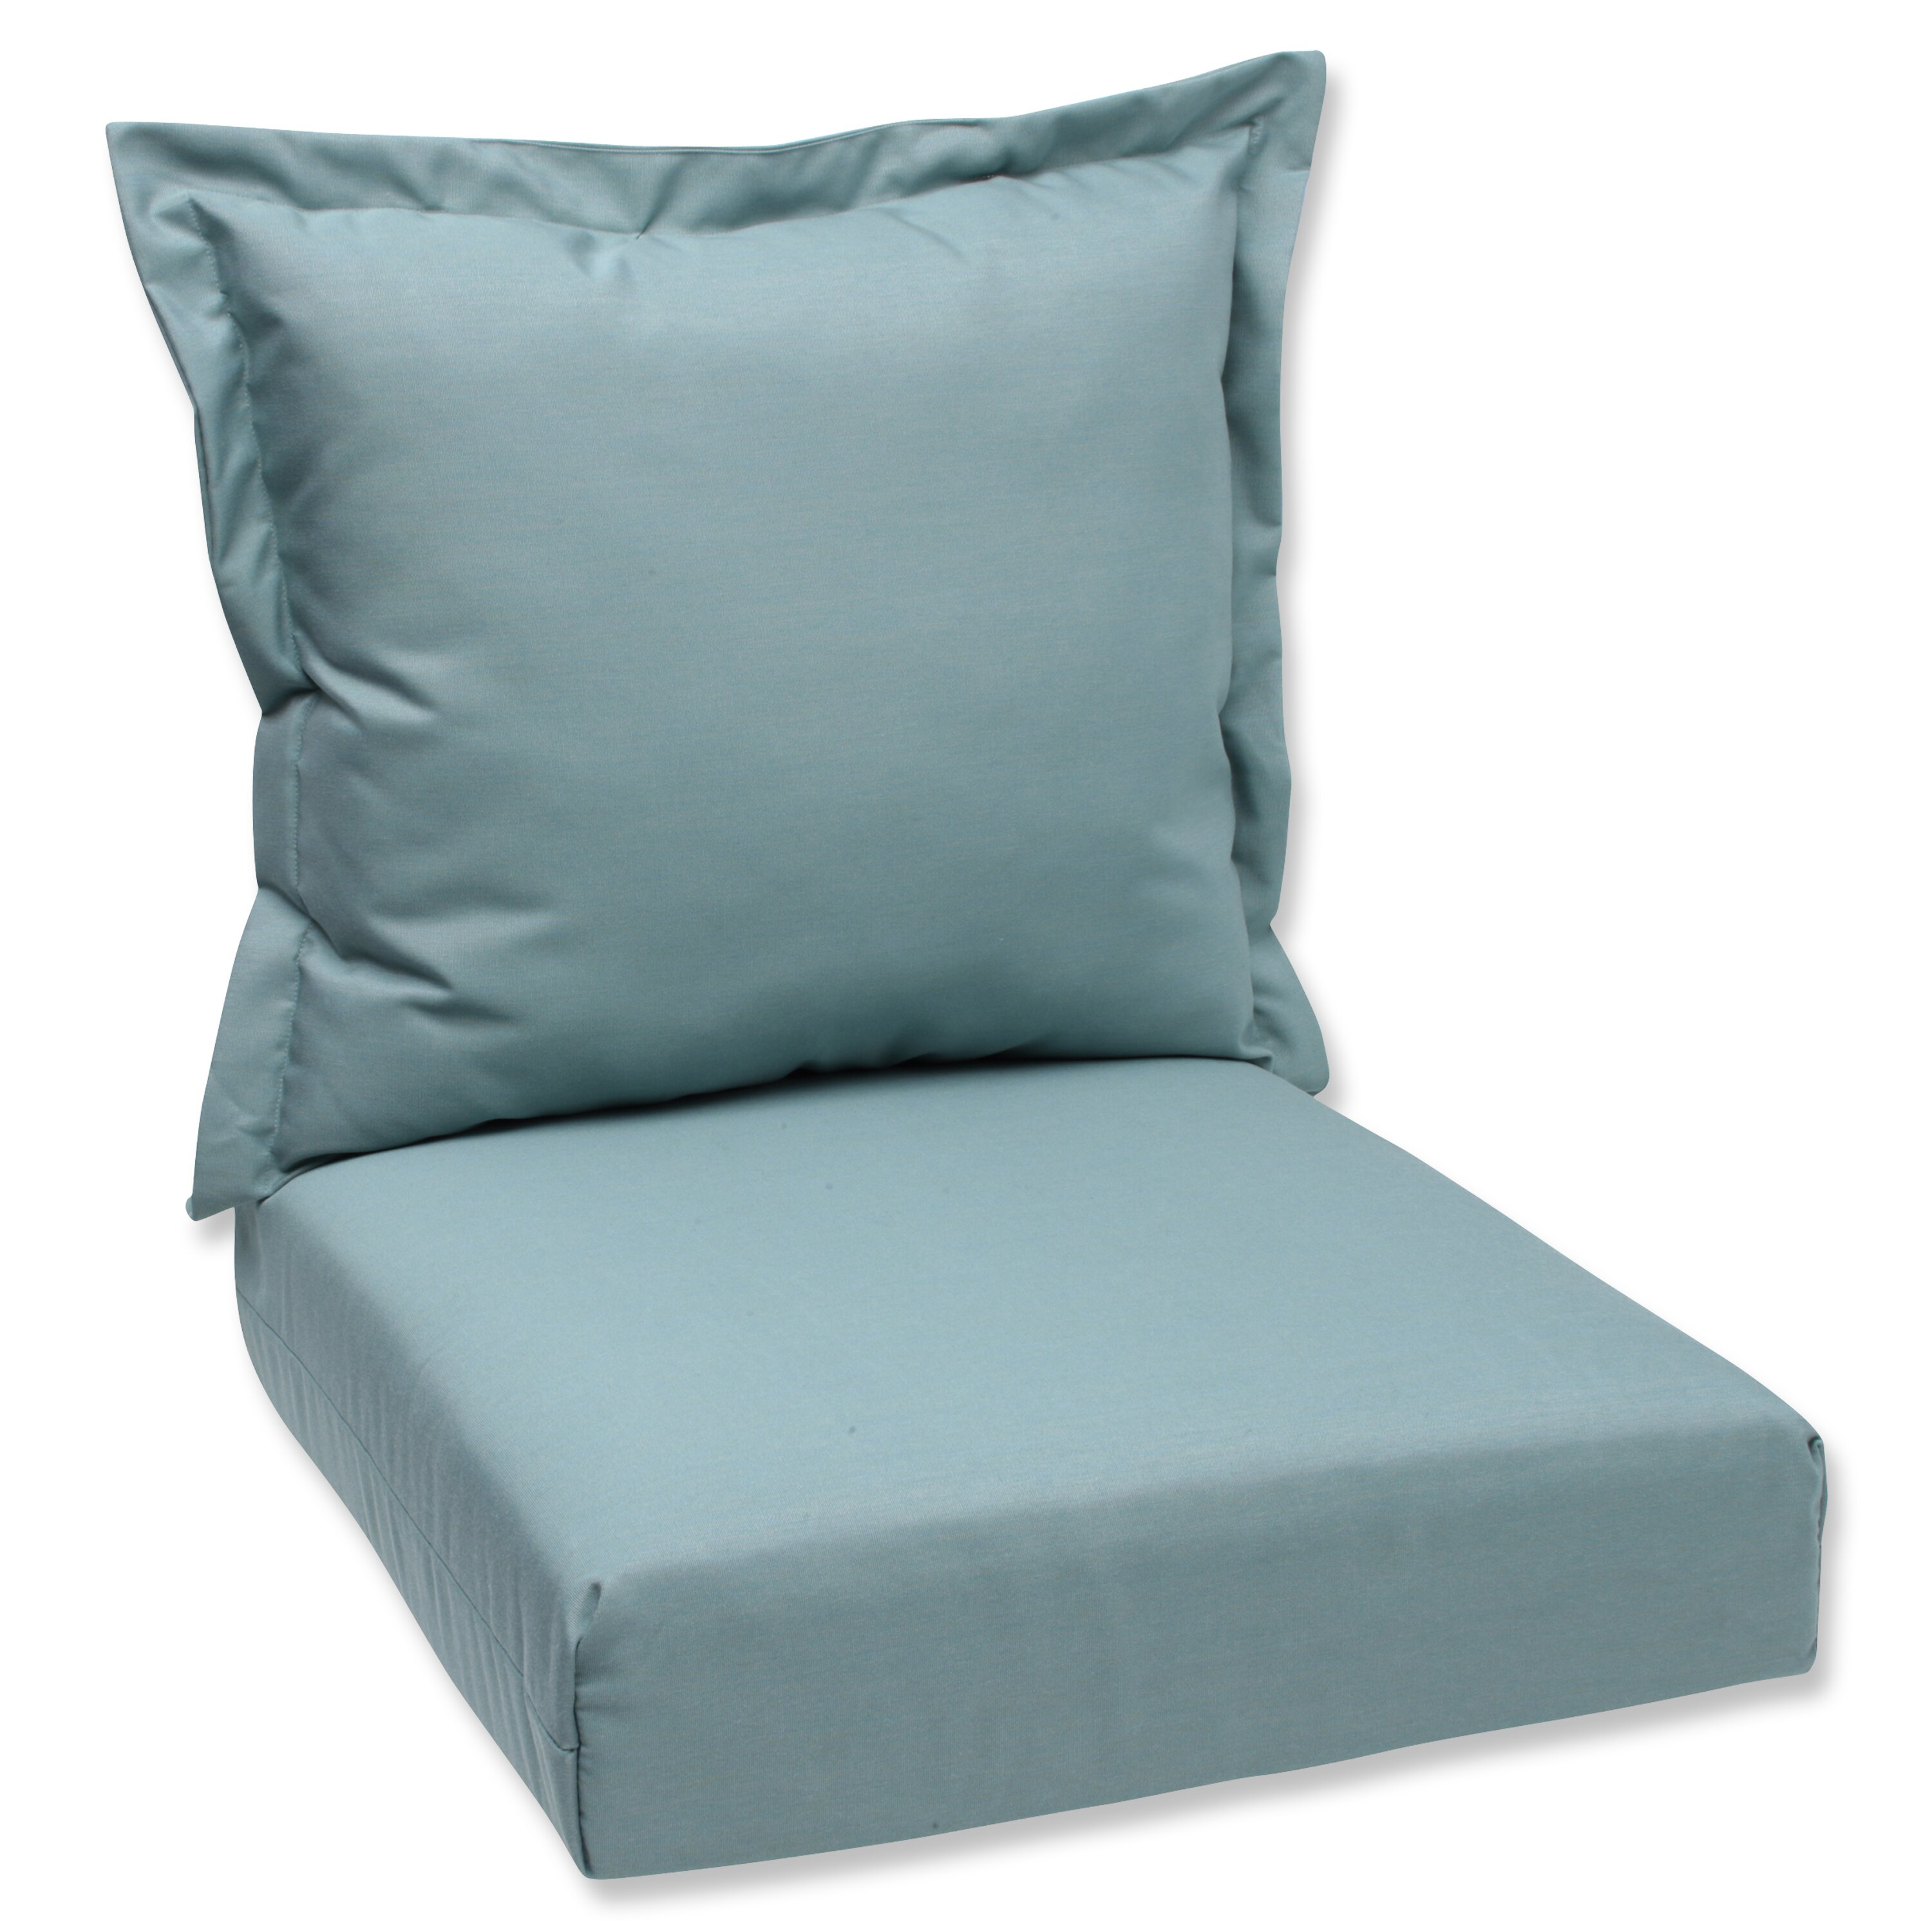 Best Of Patio Furniture Cushion